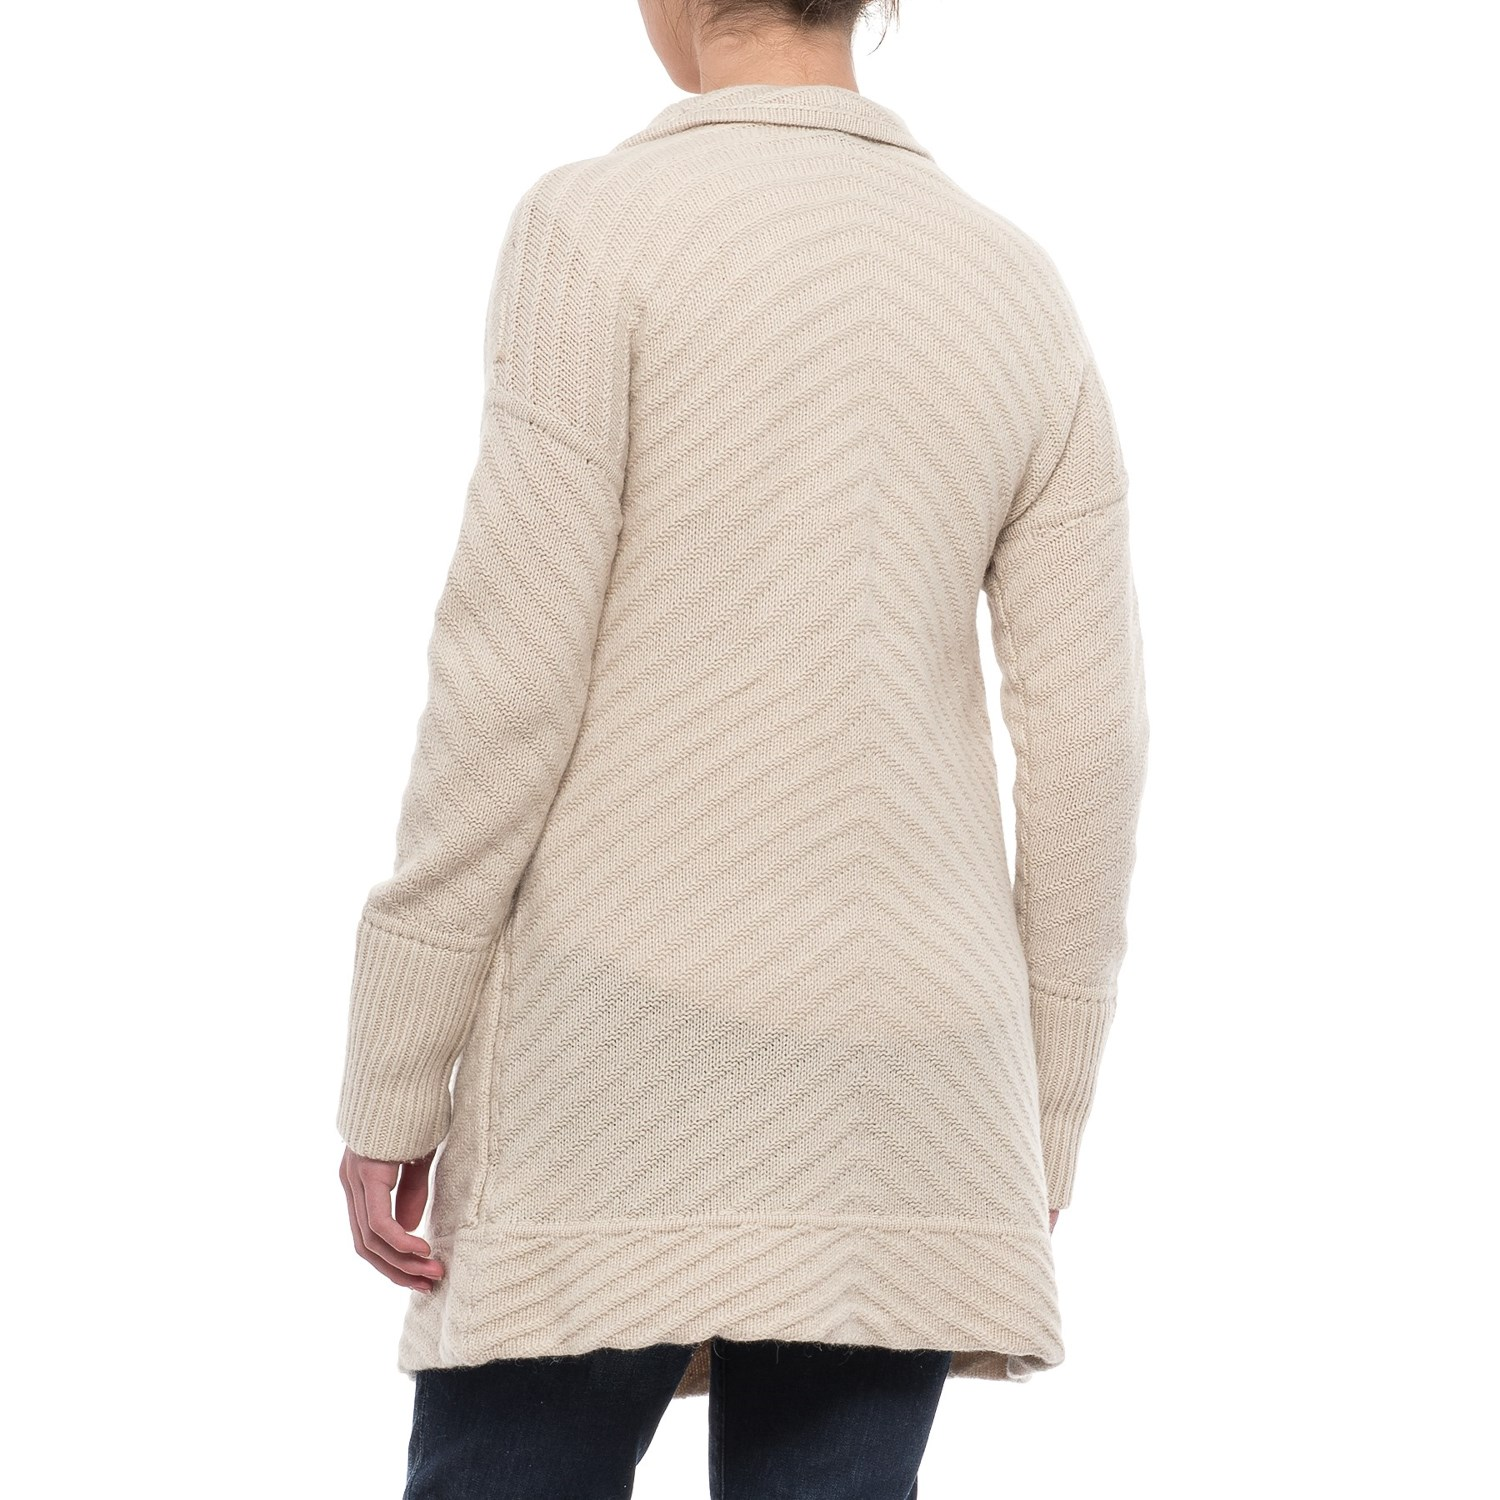 Tahari Allover Texture Open Cardigan Sweater (For Women) - Save 45%